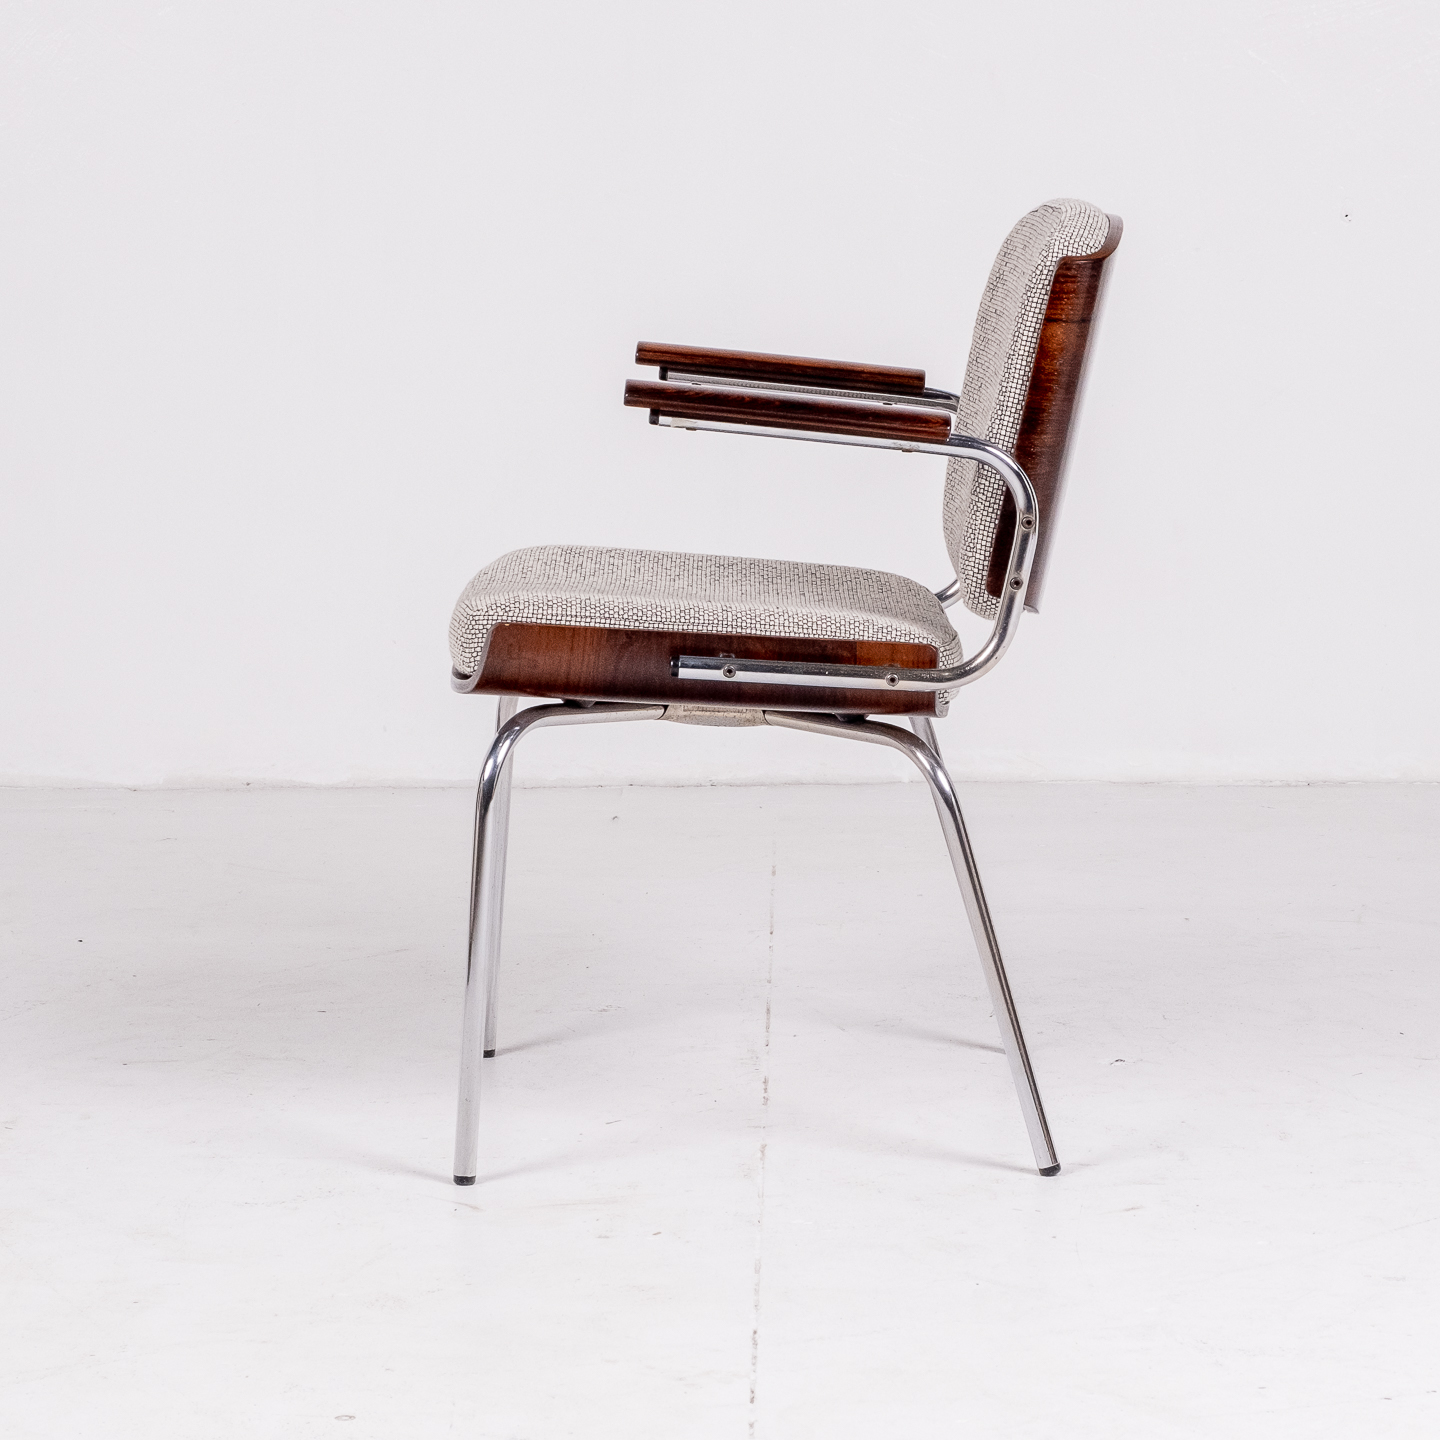 Set Of 4 Dining Chairs By Duba Mobelindustri In Rosewood, Chrome And New Kvadrat Upholstery, 1970s, Denmark 84